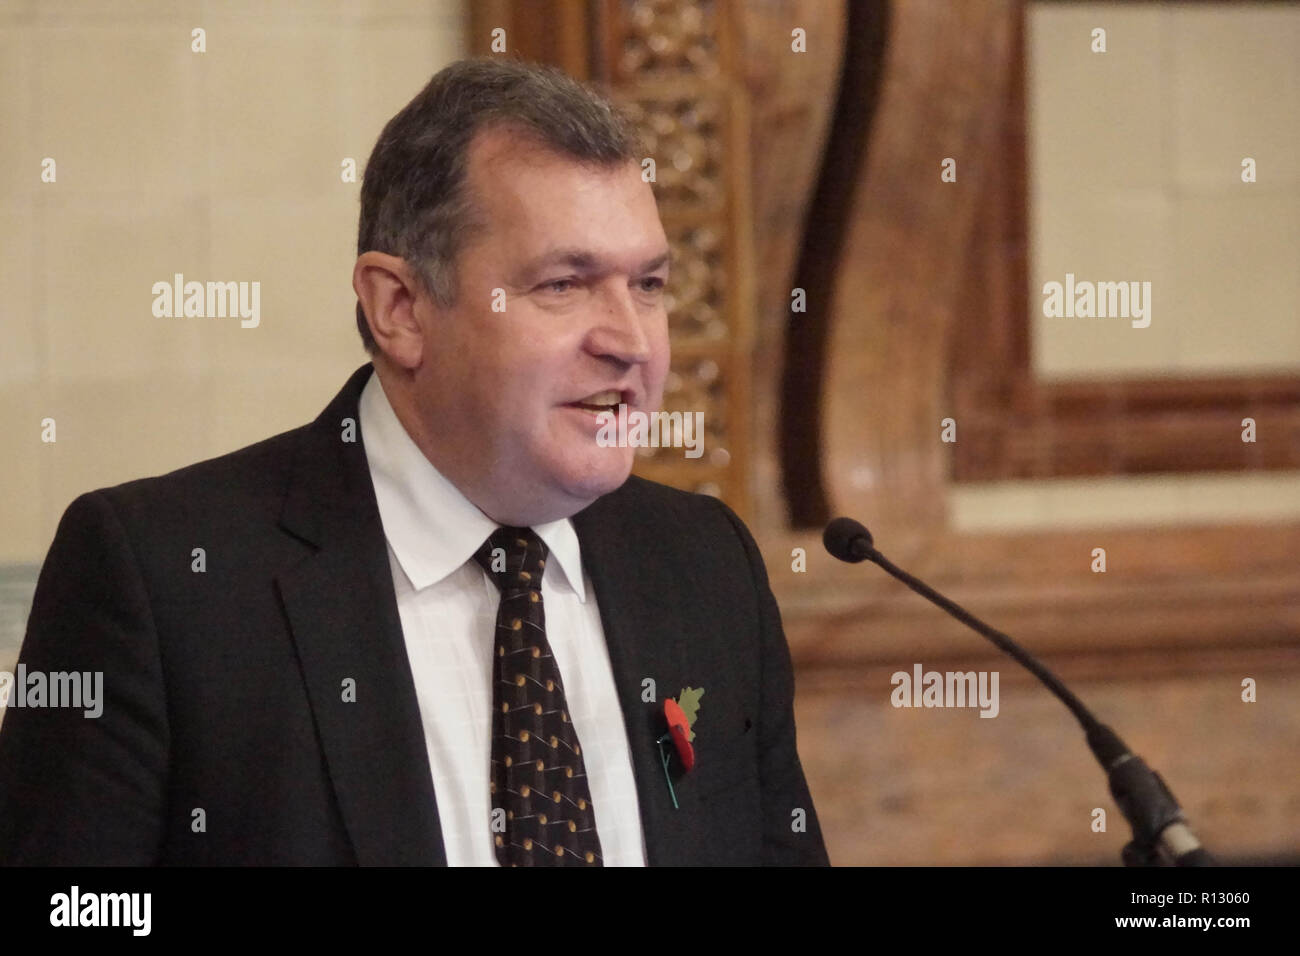 London, UK. 08 November 2018. London, England. Chris Maines at Lib Dems hold GLA 2020 hustings in the David Lloyd George Room at the National Liberal Club. Reetendra Nath Banerji, Rob Blackie, Caroline Pidgeon, Charley Hasted, Irina Von Wiese, Chris Maines, Hina Bokhari and Joyce Onstad all addressed Liberal Democrat Party members with an view to selection as candidates for the Greater London Assembly election of 2020. © Peter Hogan/Alamy Live News - Stock Image